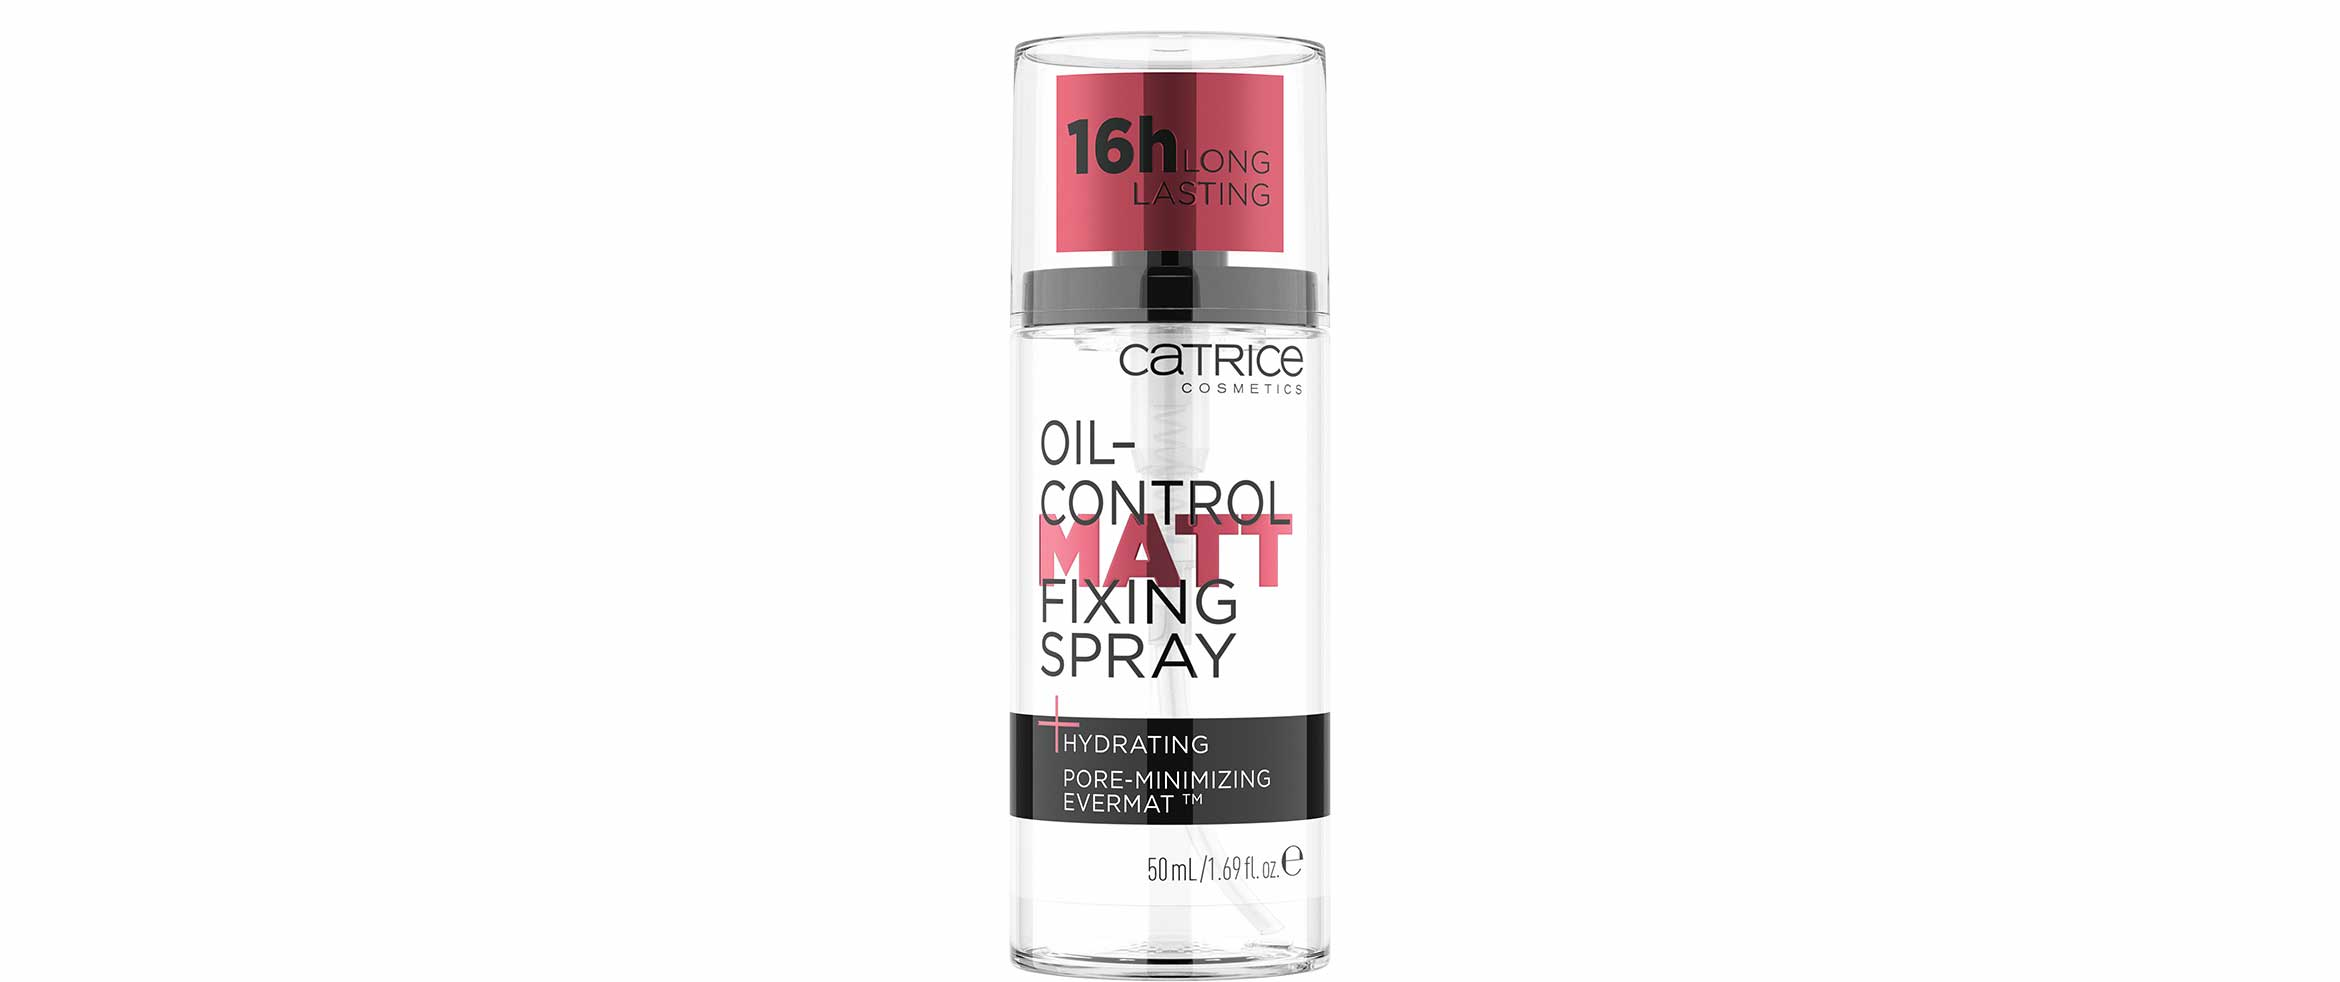 catrice oil-control matt fixing spray